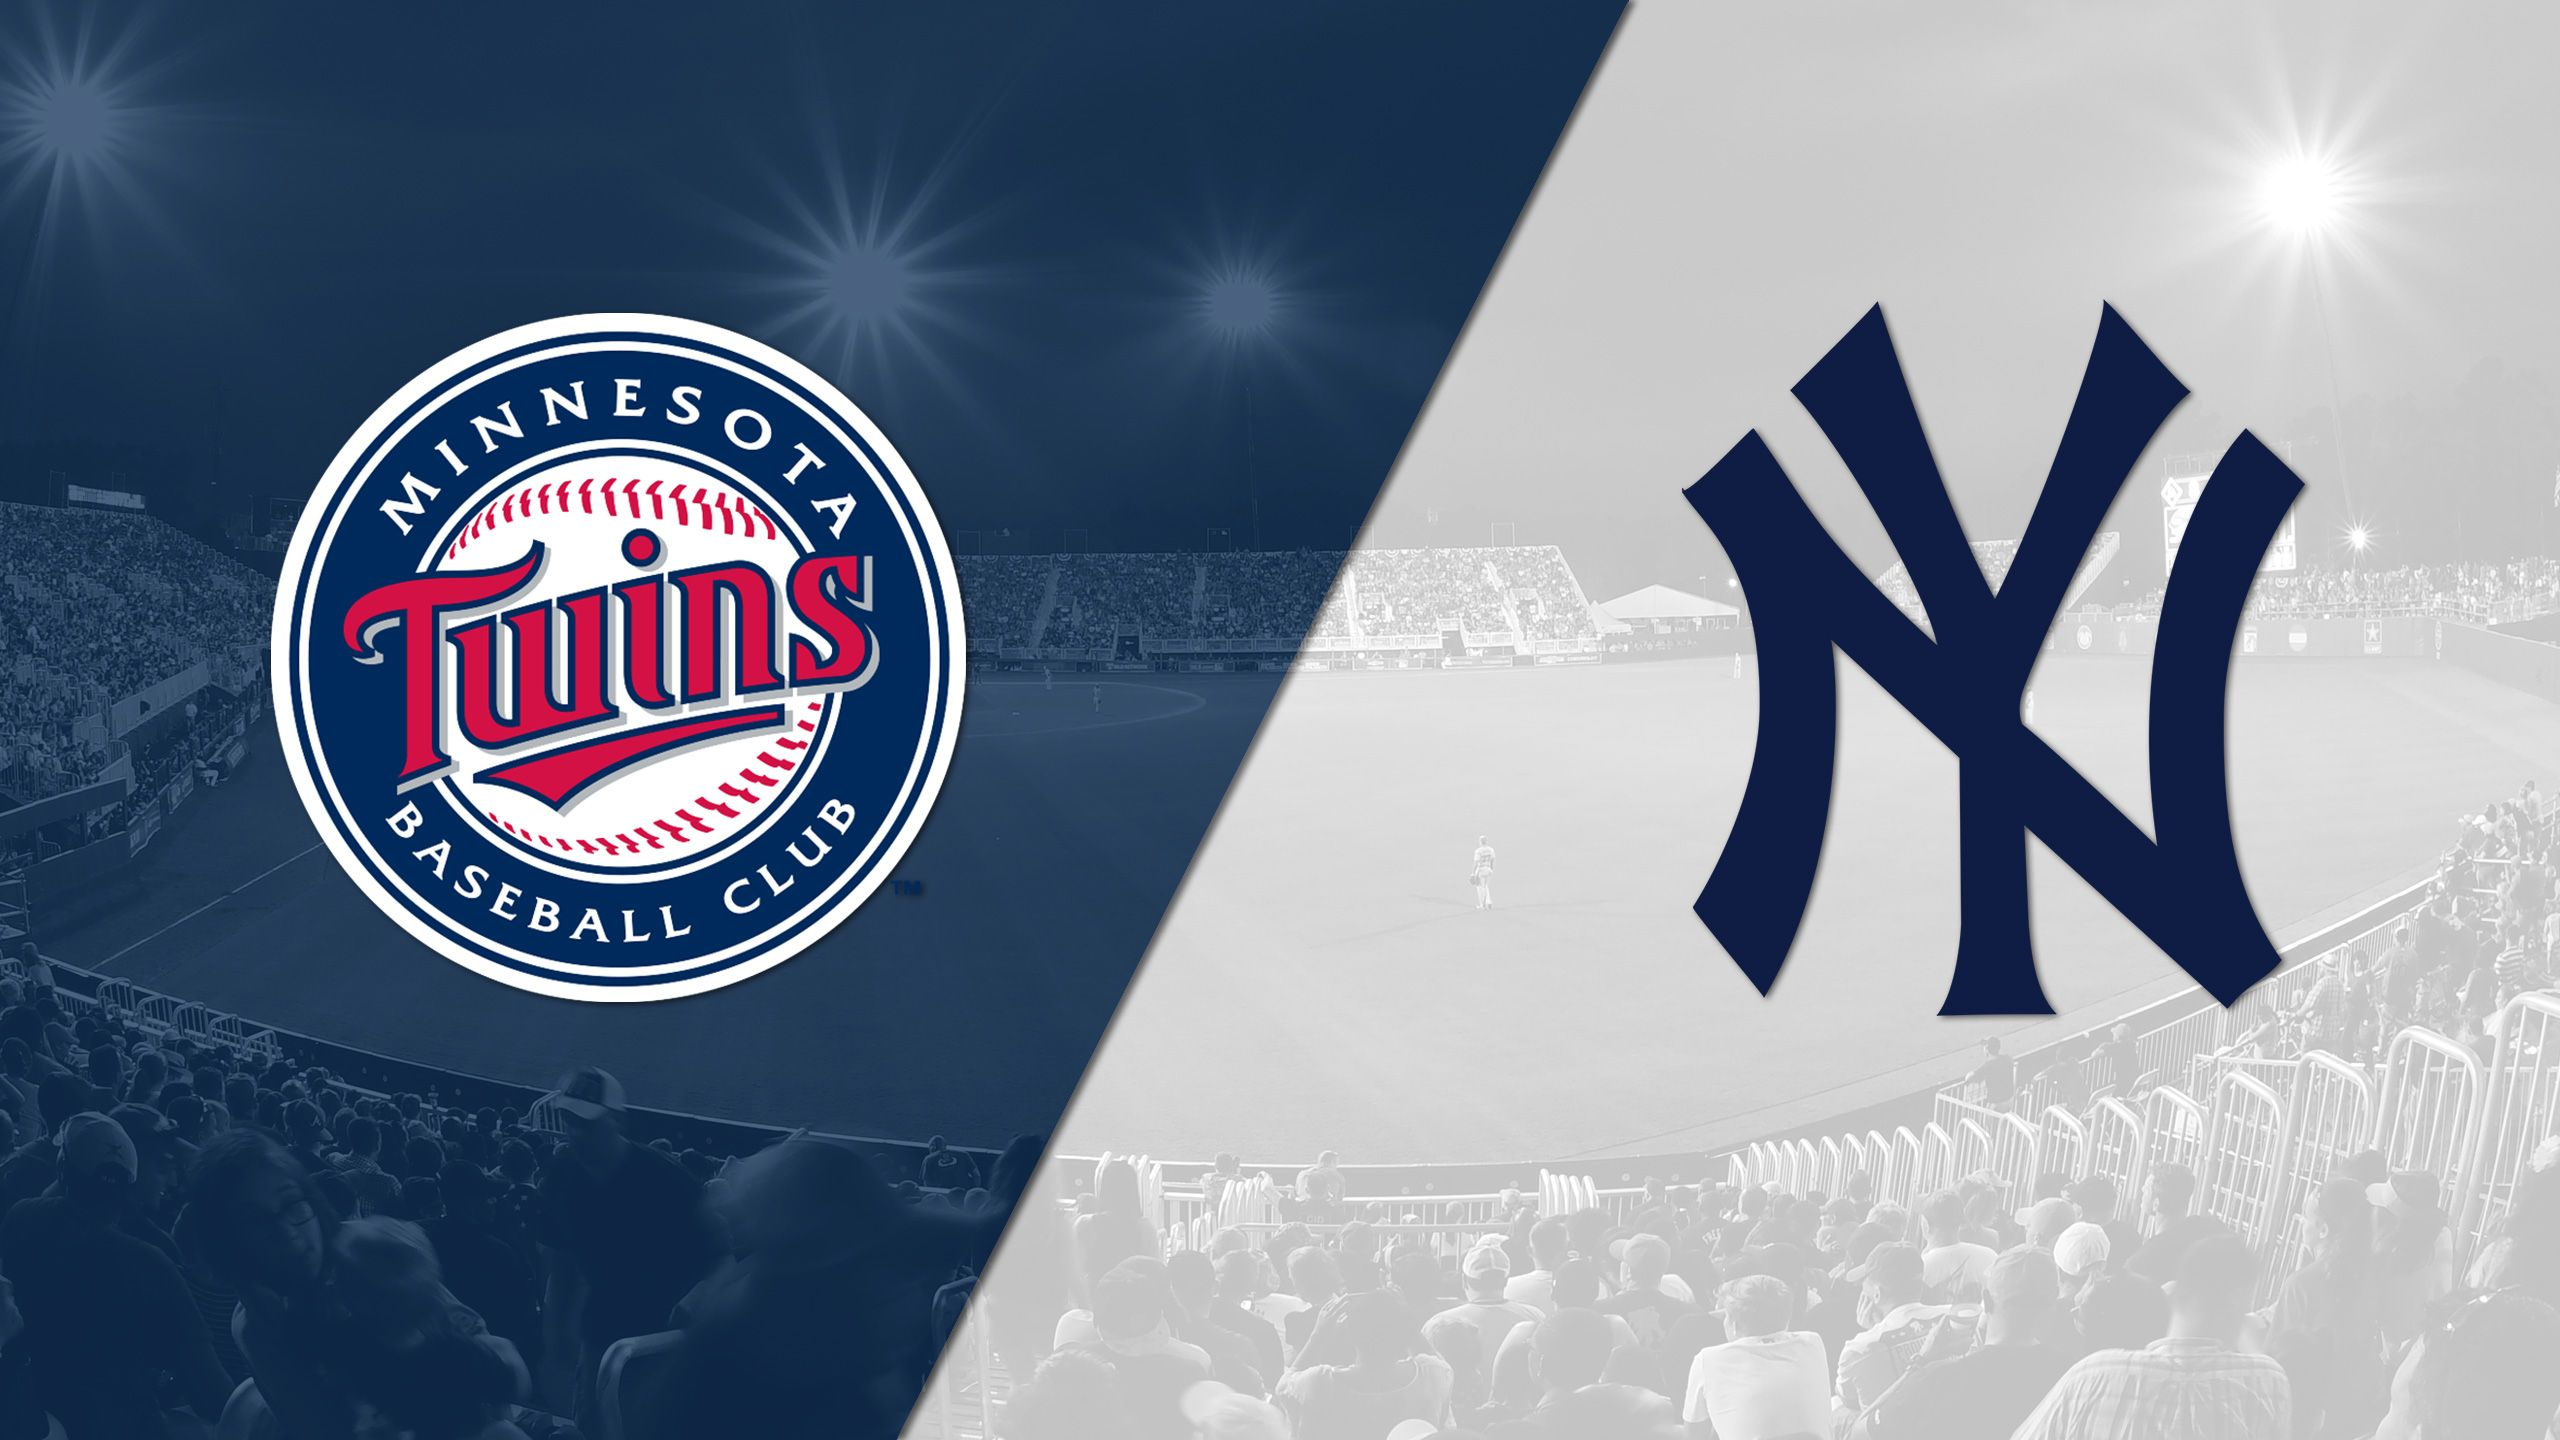 In Spanish - Minnesota Twins vs. New York Yankees